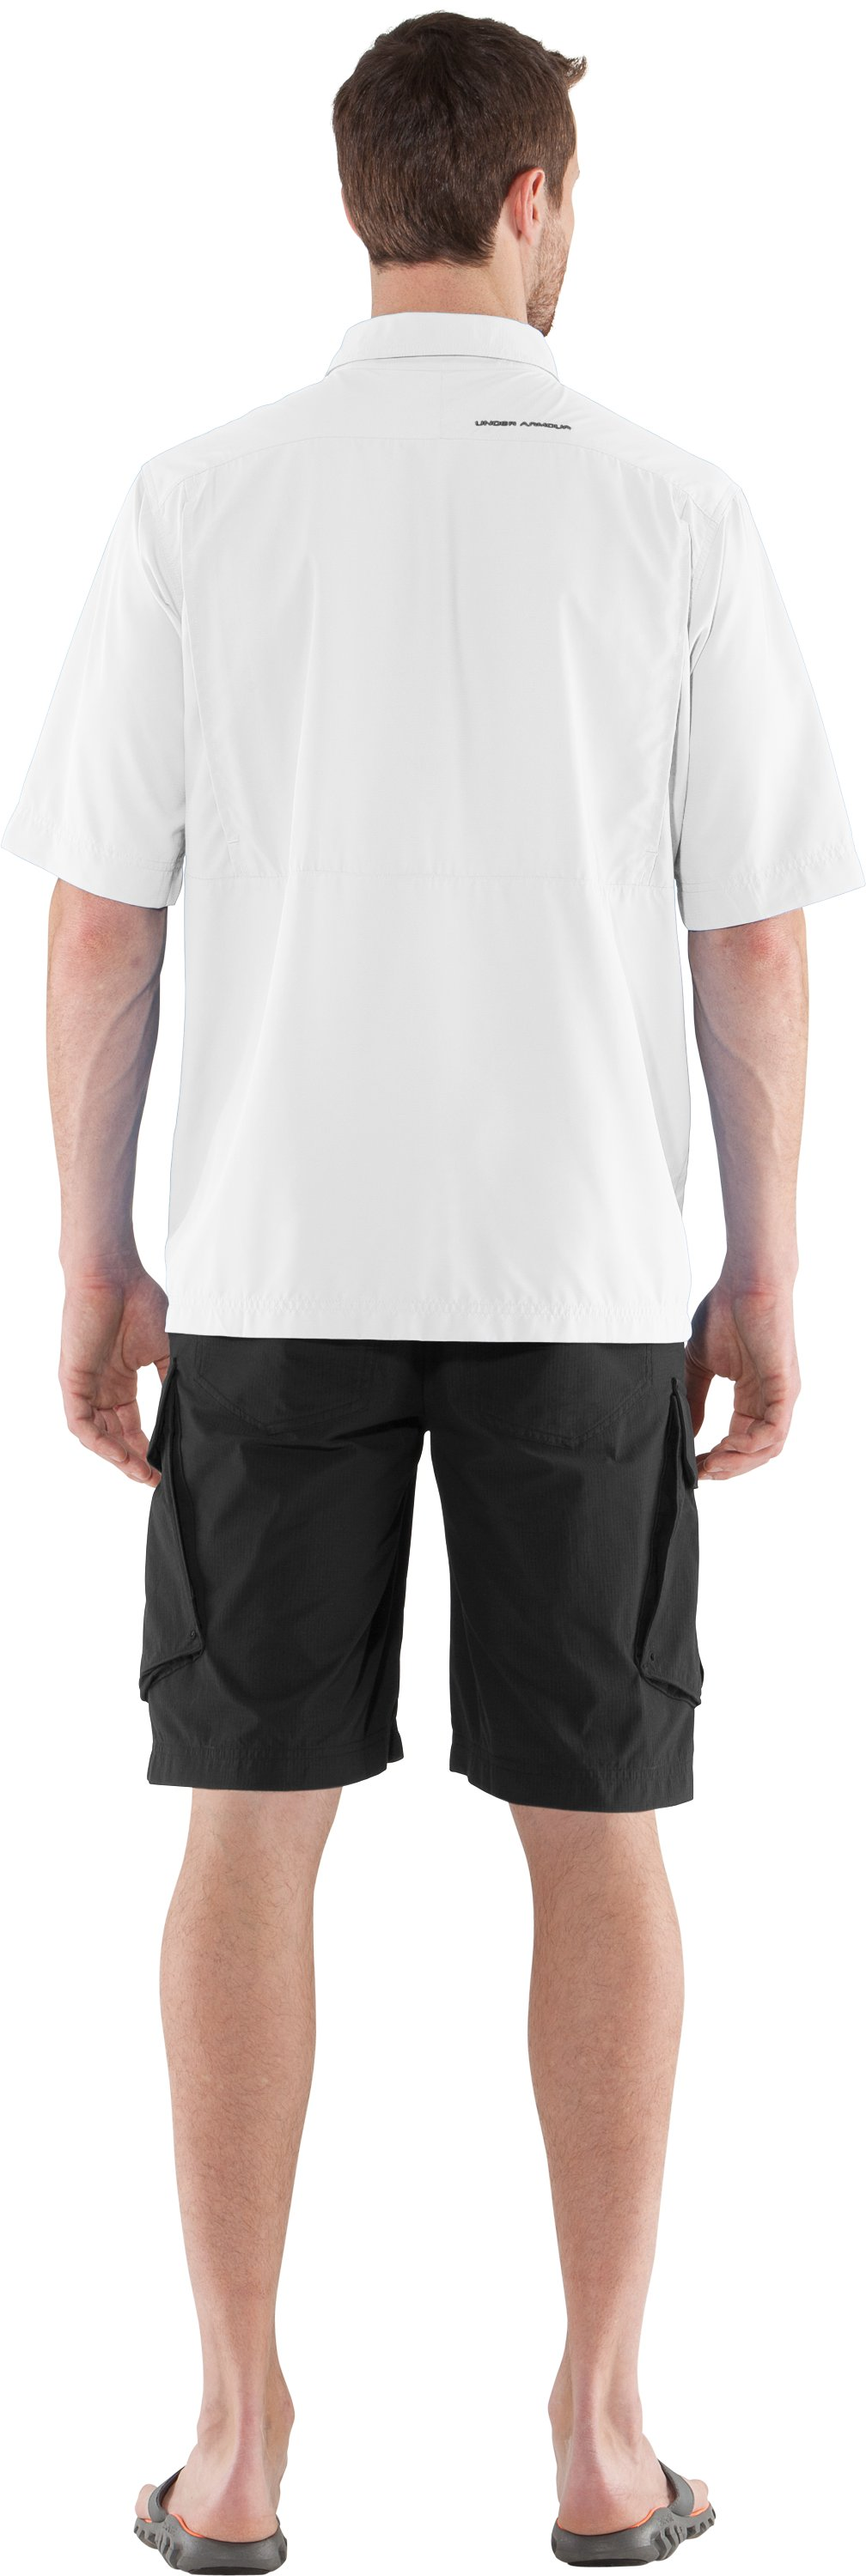 Men's Flats Guide Short Sleeve Shirt, White, Back